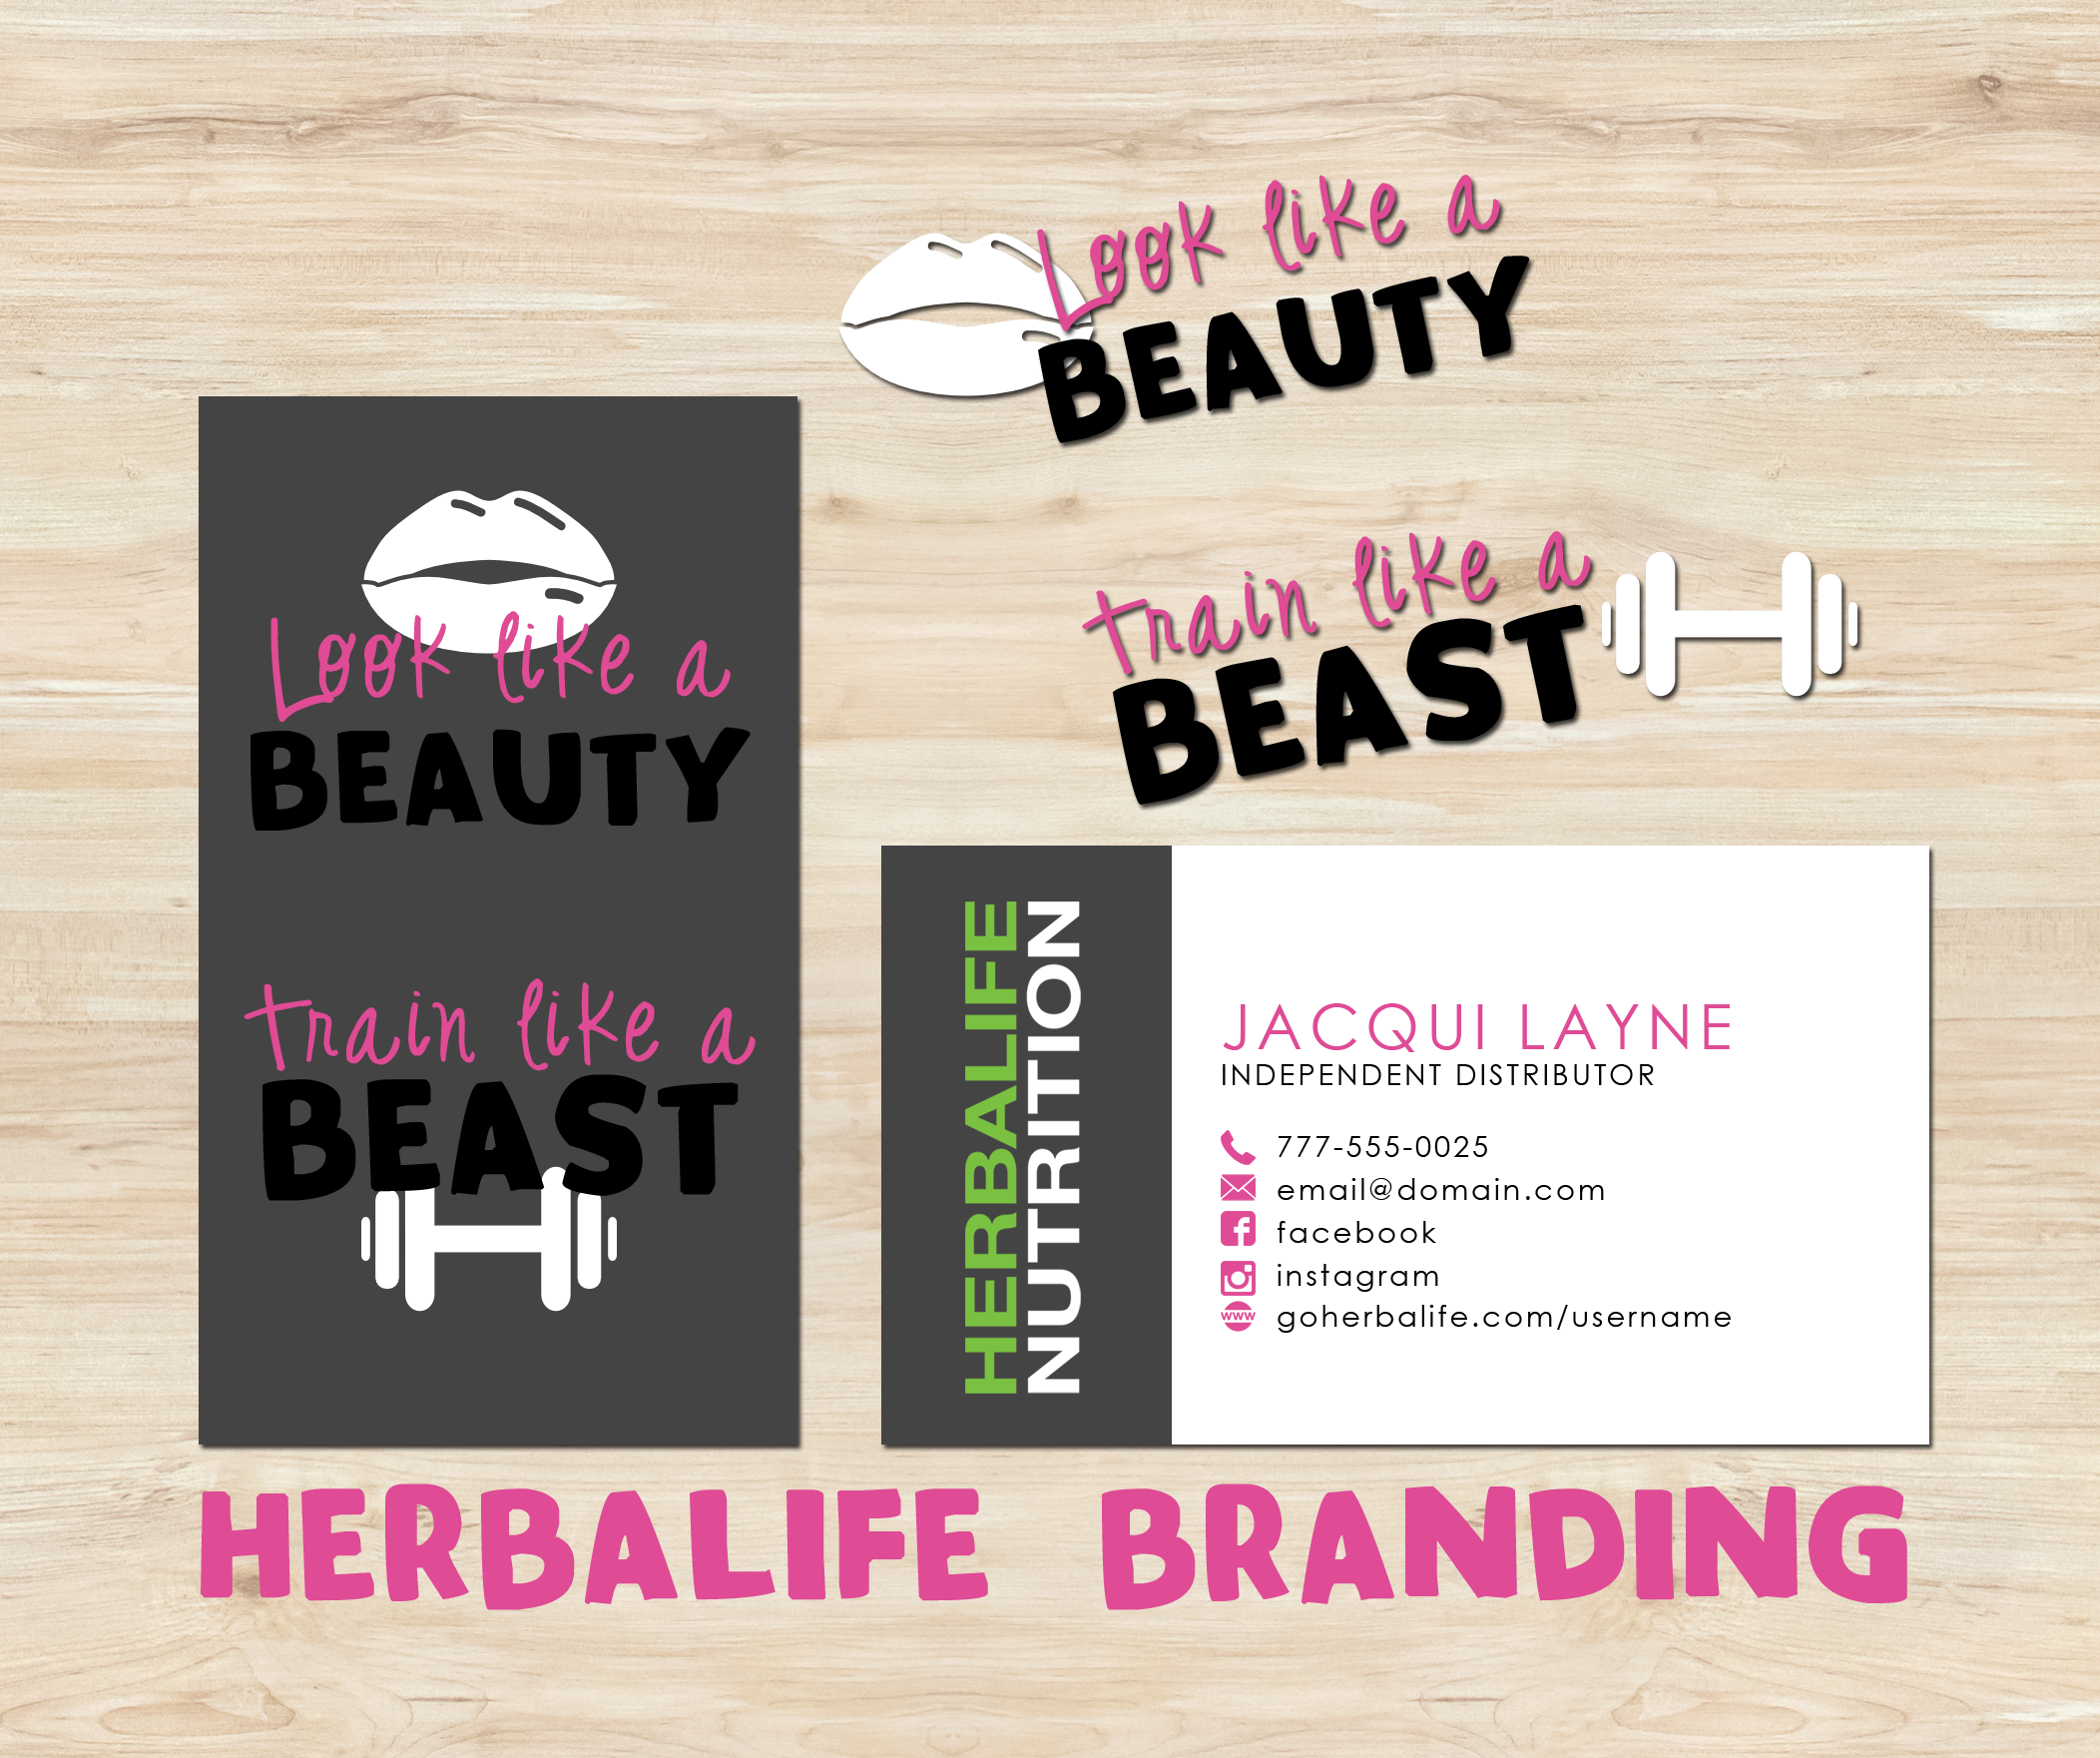 Herbalife Business Card Digital Template | Look Like A Beauty ...